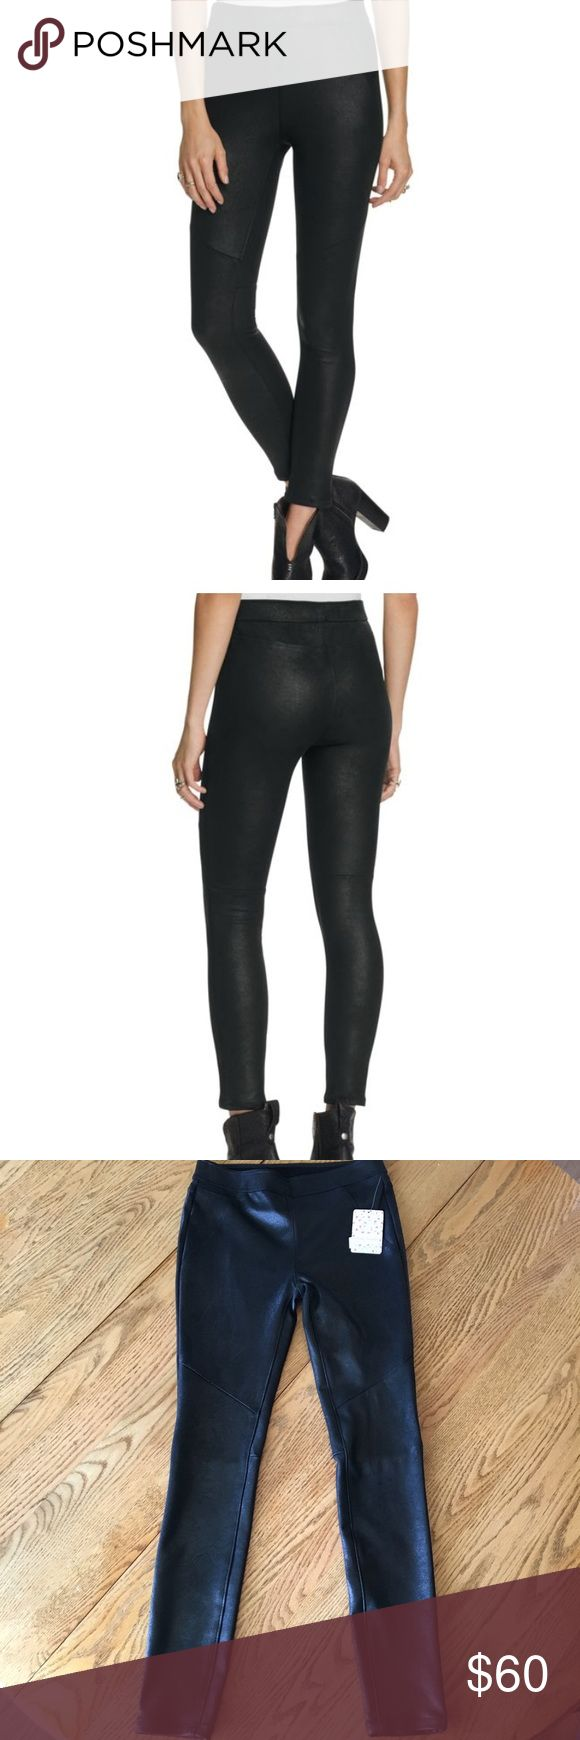 Free People Never Let You Go Vegan Leather Legging Free People Never Let You Go Vegan Leggings.  Material feels and looks like a soft faux leather/suede.  NWT Free People Pants Leggings